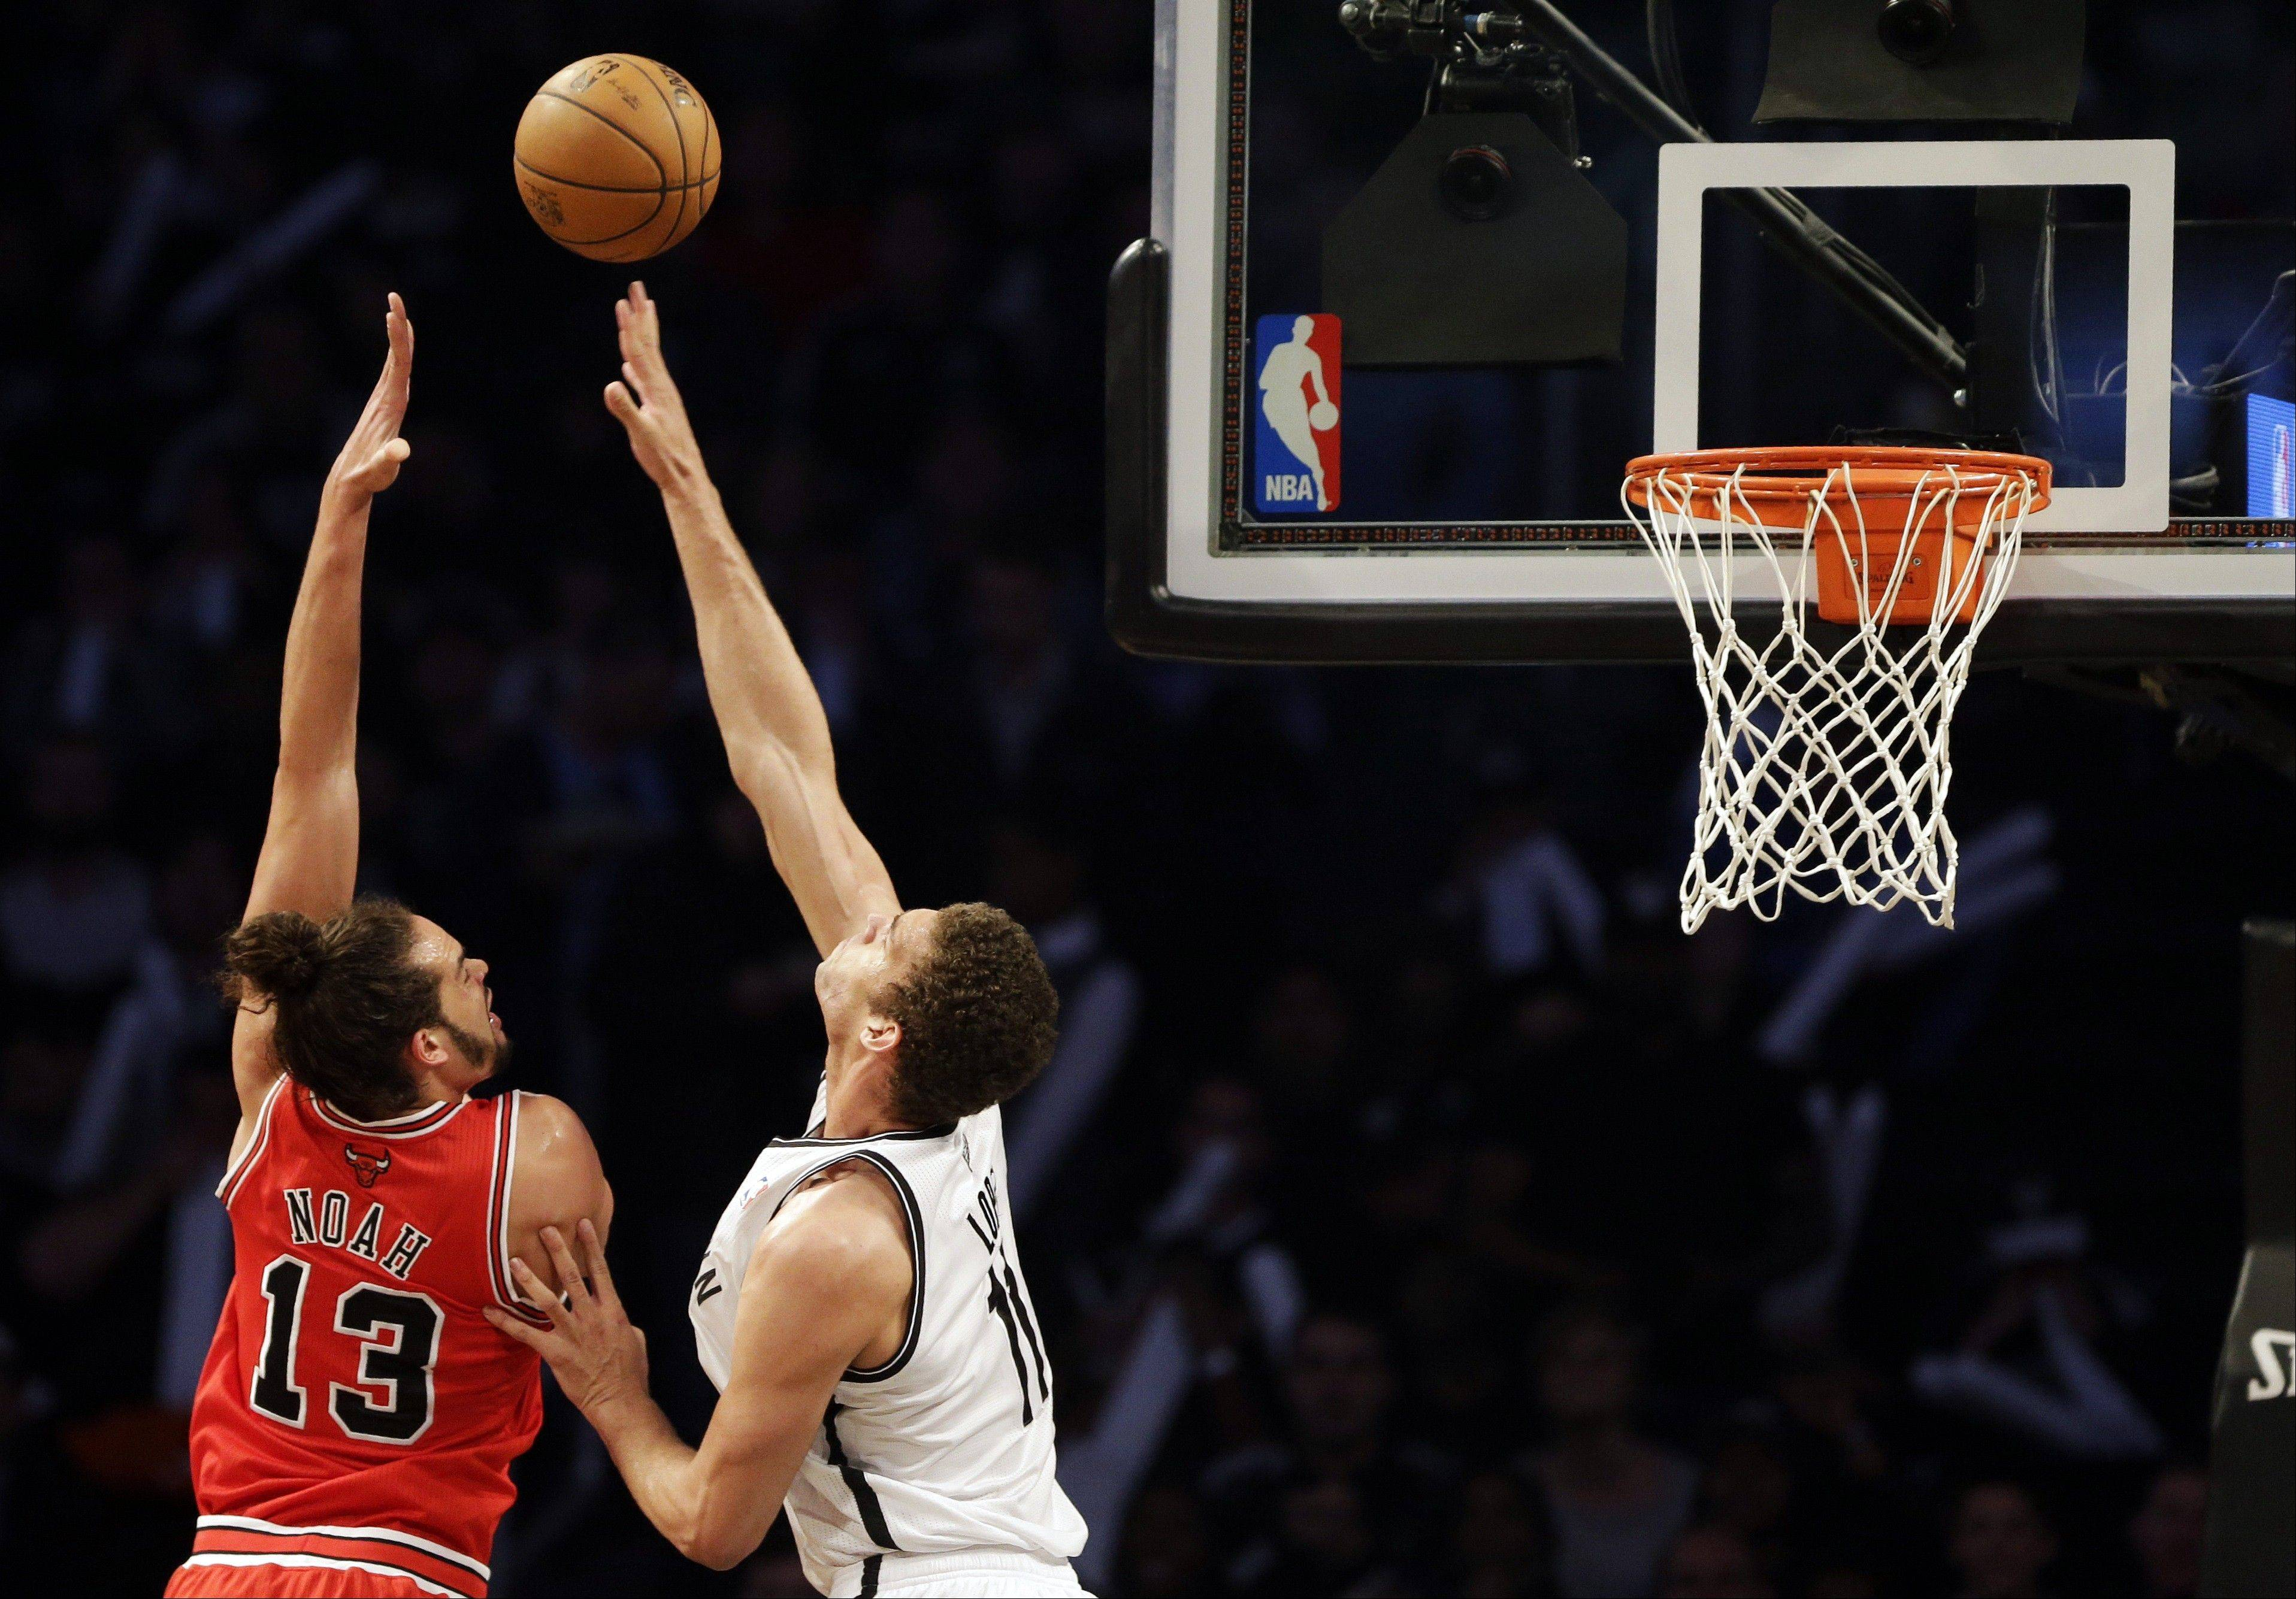 Chicago Bulls center Joakim Noah, left, shoots against Brooklyn Nets center Brook Lopez during the first half in Game 7 of their first-round NBA basketball playoff series in New York, Saturday, May 4, 2013.